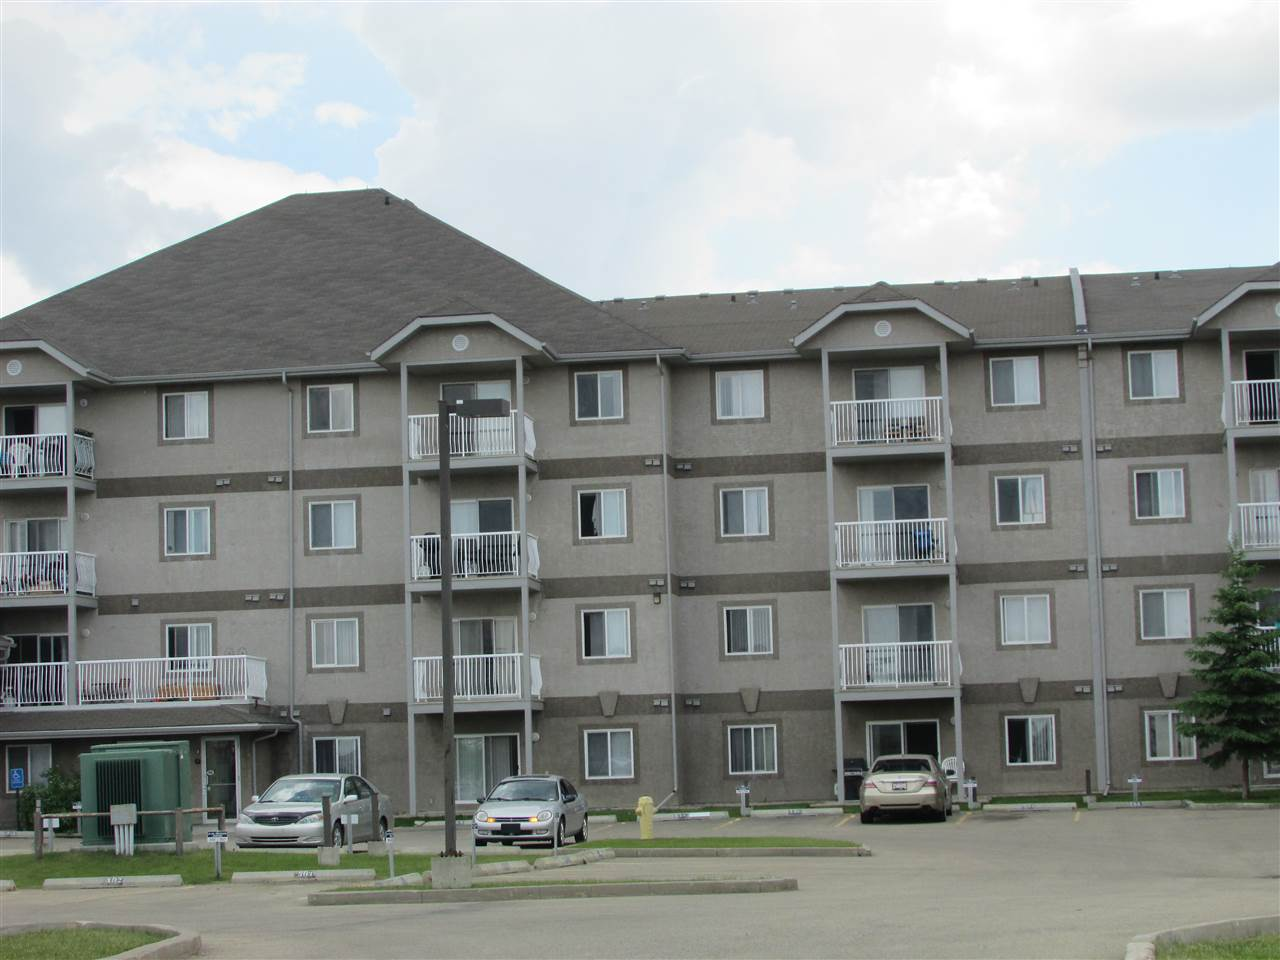 PERFECT FOR INVESTORS !!!   Tenant already in place !!!  This main floor unit is a 2 bedroom 2 bathroom with open concept living dining kitchen area. Kitchen has ample cupboards and layout would allow to add an island or breakfast bar.  Master bedroom has walk-thru closet & private full 4 pc ensuite.  Second bedroom is separated from the master with the 4 pc main bathroom just outside the door.  2 TITLED energized stalls are right in front of the unit.  Quick access to highway 16 and close to schools, shopping, playgrounds, walking trails, public transit and just steps away from the Tri-Leisure Center.  Well maintained & clean unit.  Carpets have been professionally cleaned.  Newer washer & dryer.  Common areas are video monitored, on-site security in the evenings & on-site resident manager.